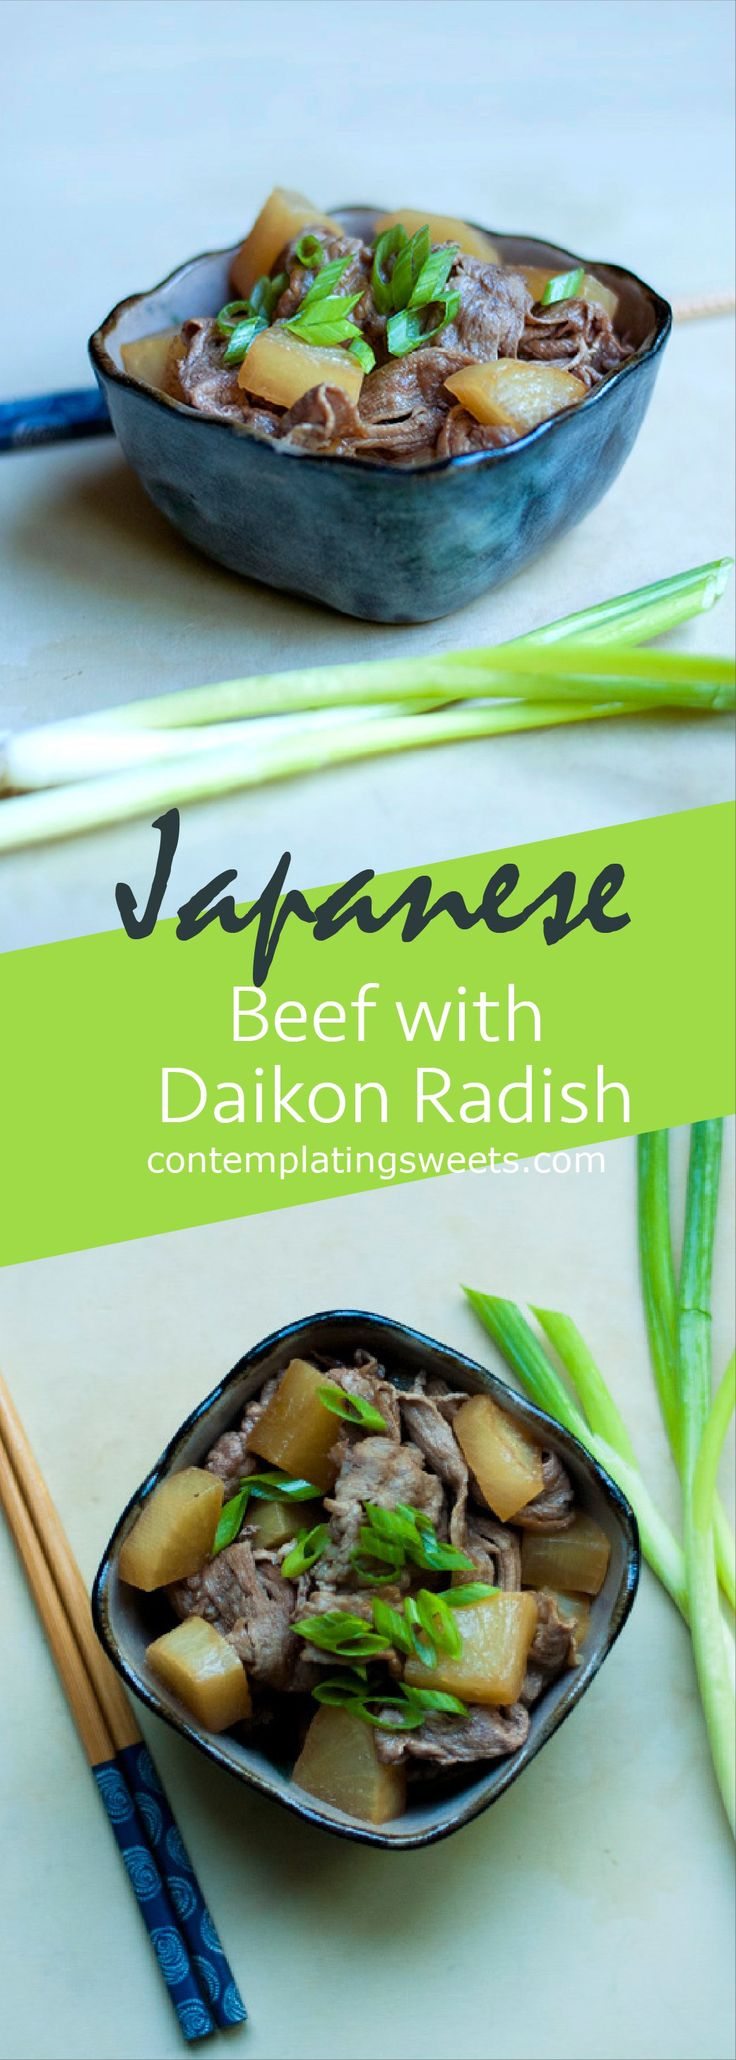 Beef with Daikon Radish- A simple weeknight dinner with classic Japanese flavor.